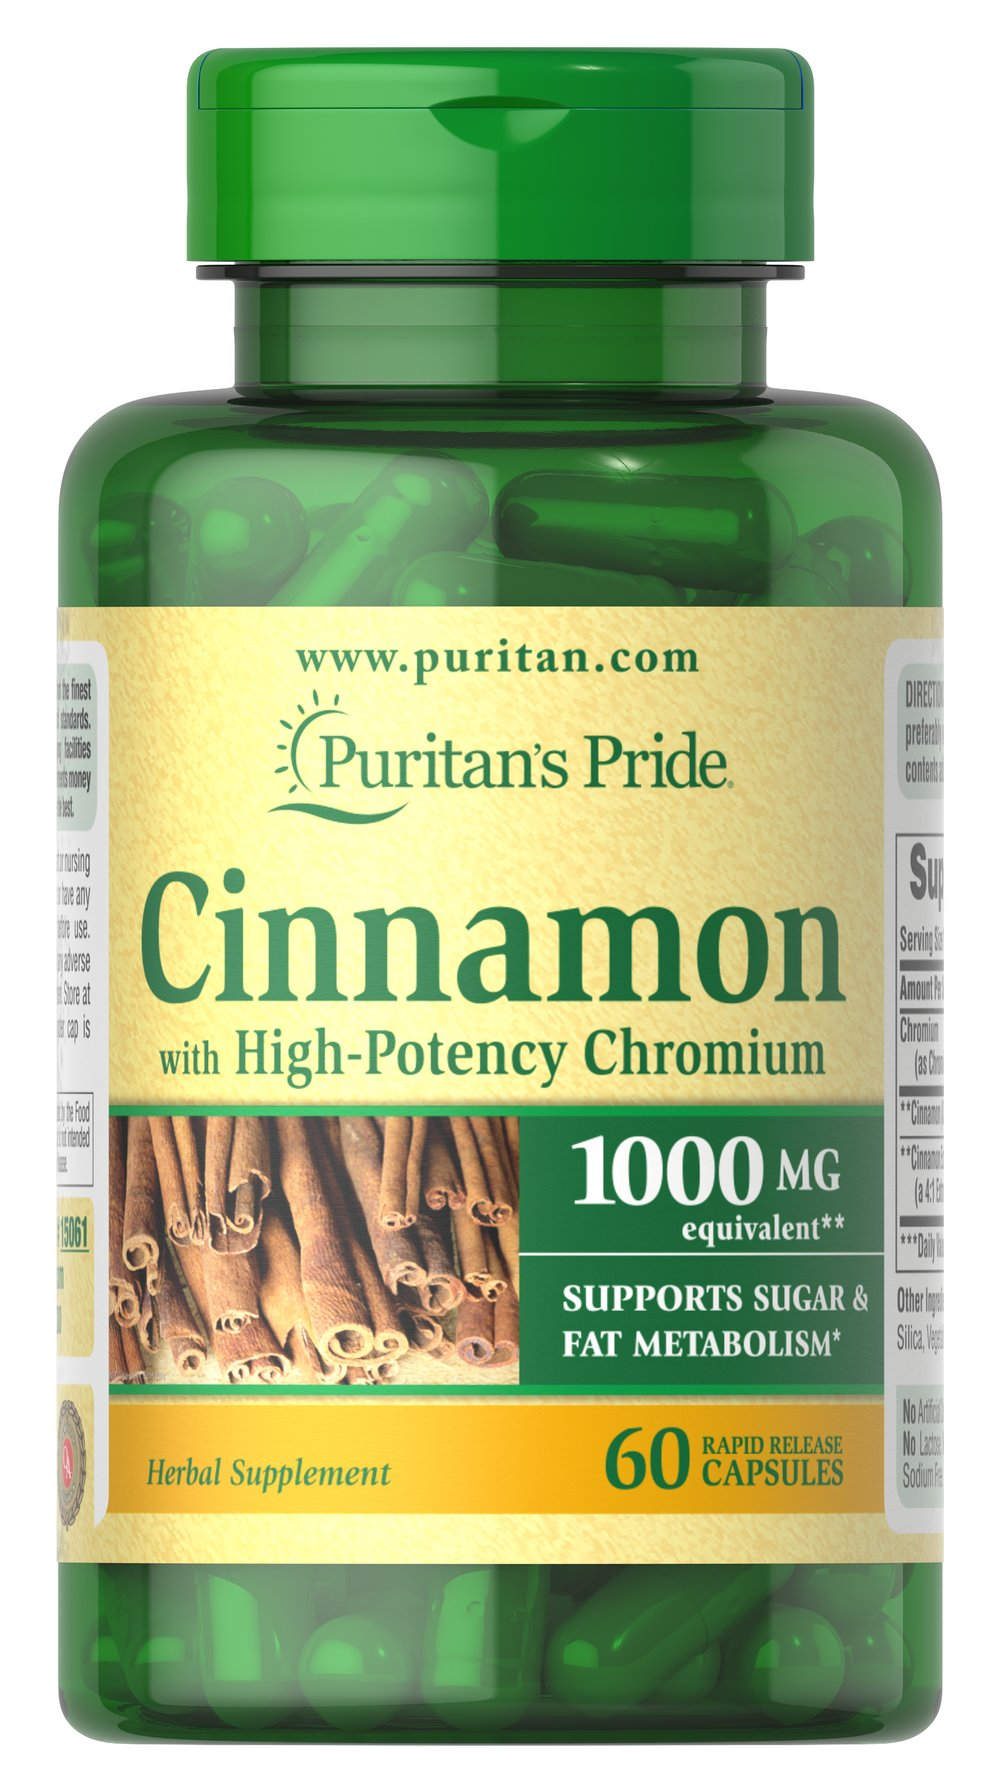 Cinnamon Complex with High Potency Chromium <ul><li>SUPPORTS SUGAR & FAT METABOLISM**</li></ul><p>Cinnamon is an ancient herb that has recently gained widespread popularity for its ability to support health and wellness.** This synergistic formula includes high-potency Chromium Picolinate. Specially formulated to deliver 1000 mg Cinnamon and 200 mcg Chromium Picolinate — an unbeatable combination.</p> 60 Capsules 1000 mg $12.99